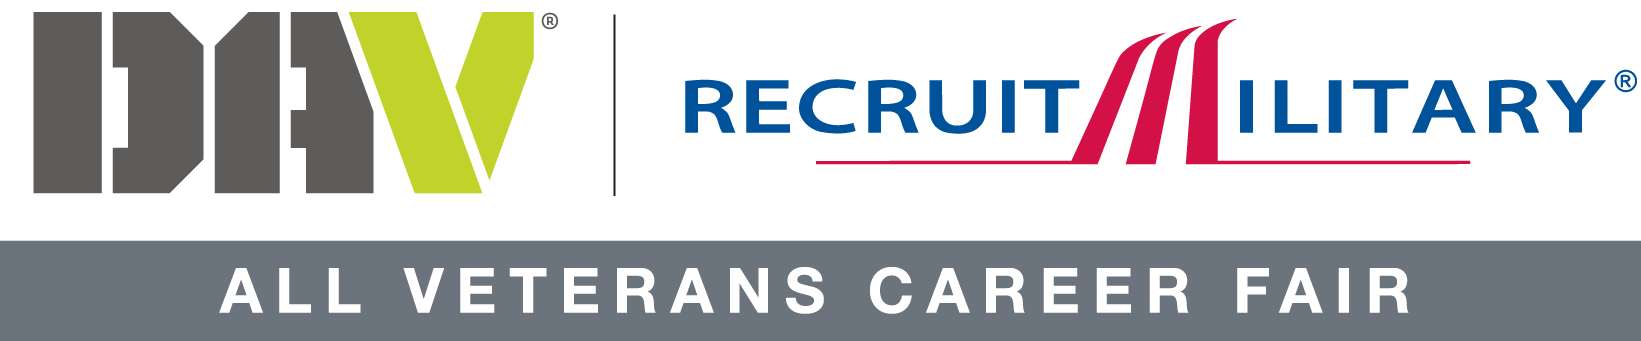 RecruitMilitary, LLC Logo